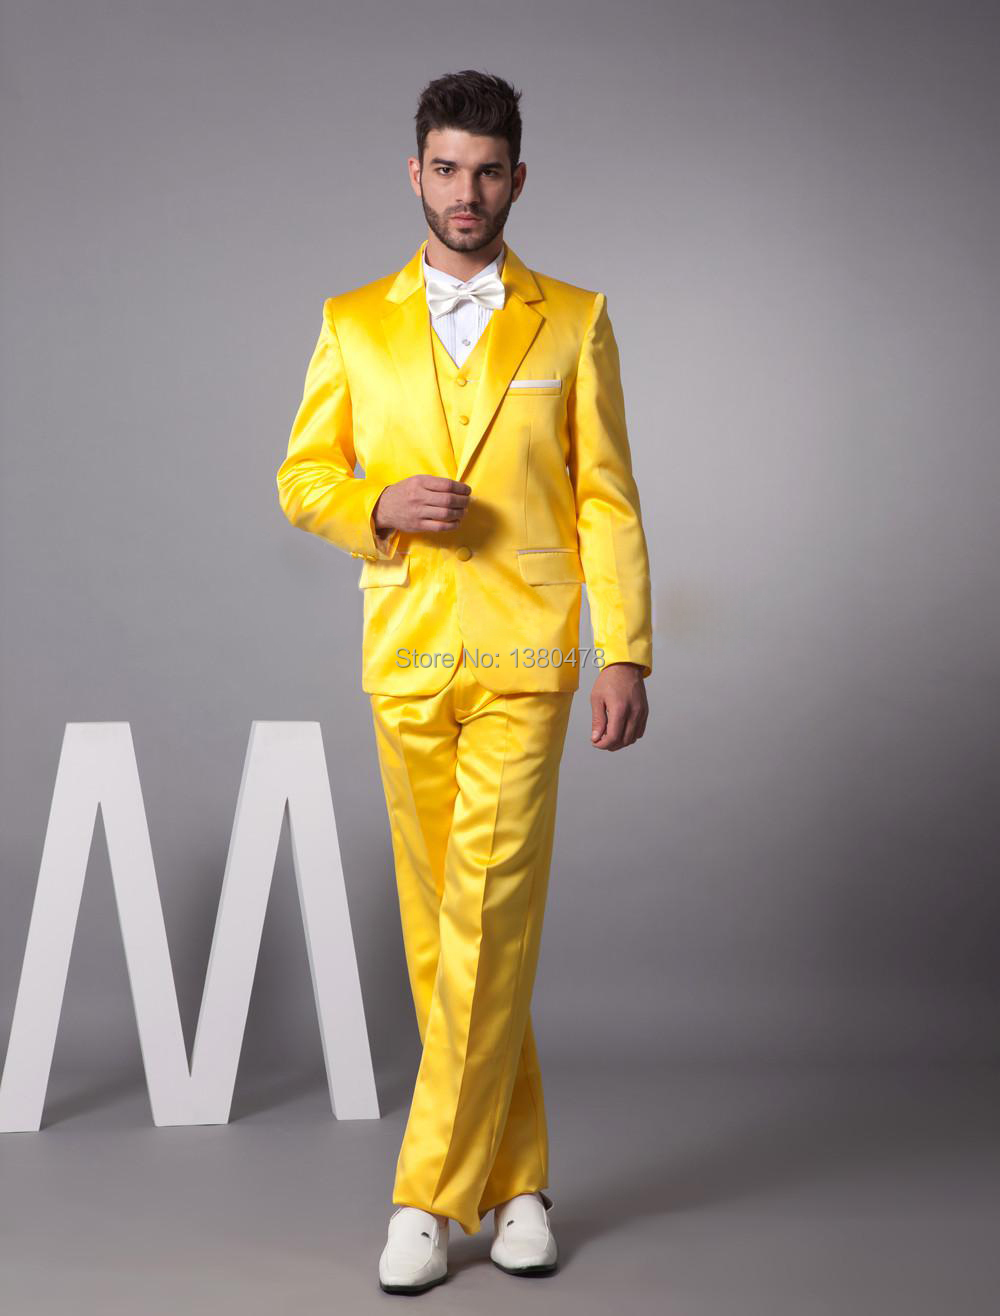 2014 New Year Hot Sale 20% off very popular custome made groom tuxedos Gun Collar Fashion Yellow Mans Wedding Suits Men suitsОдежда и ак�е��уары<br><br><br>Aliexpress